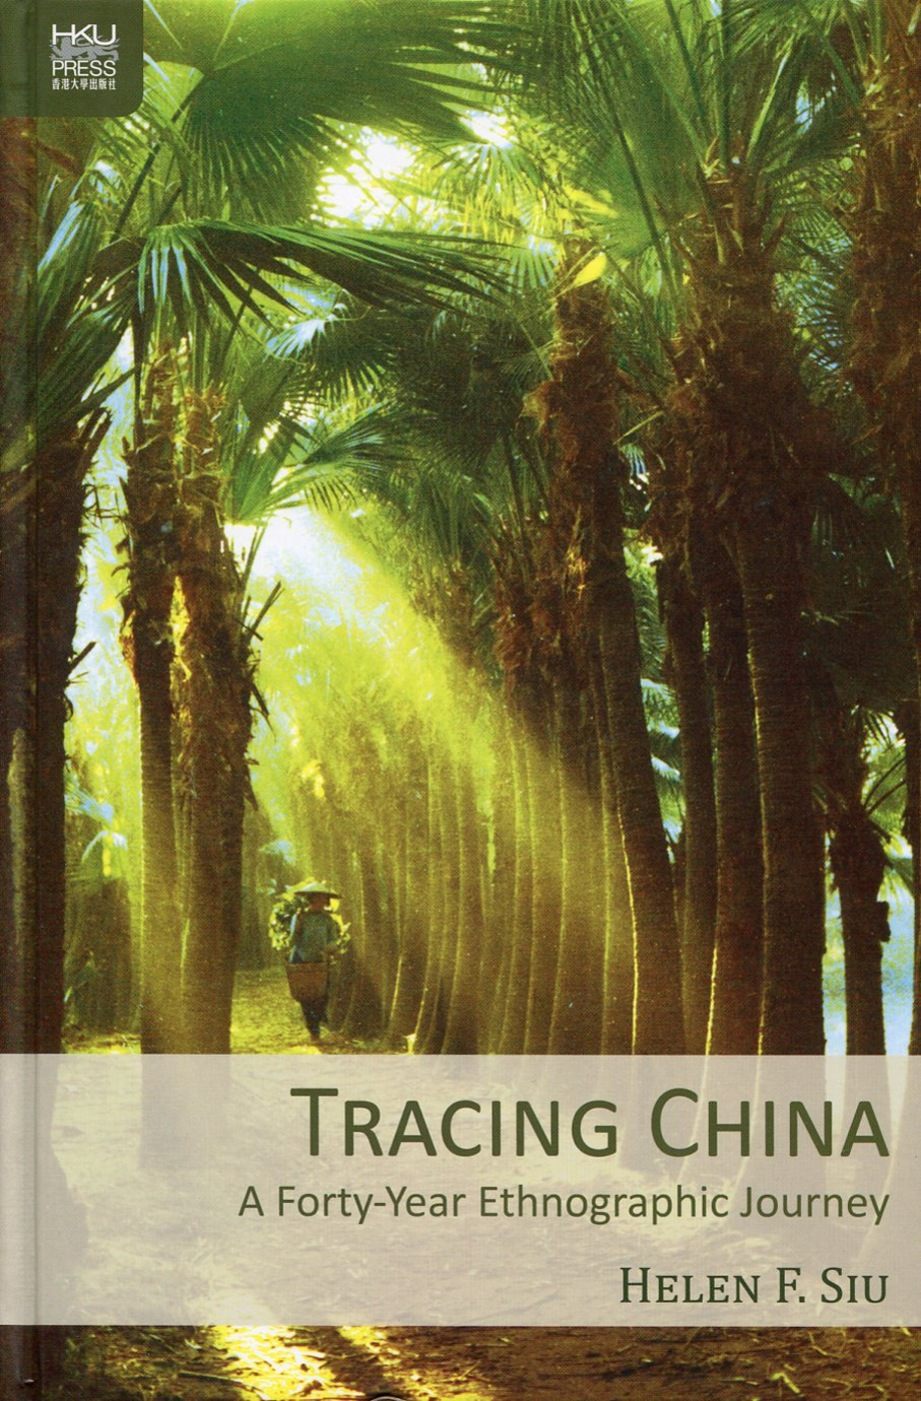 Tracing China:A Forty-Year Ethnographic Journey